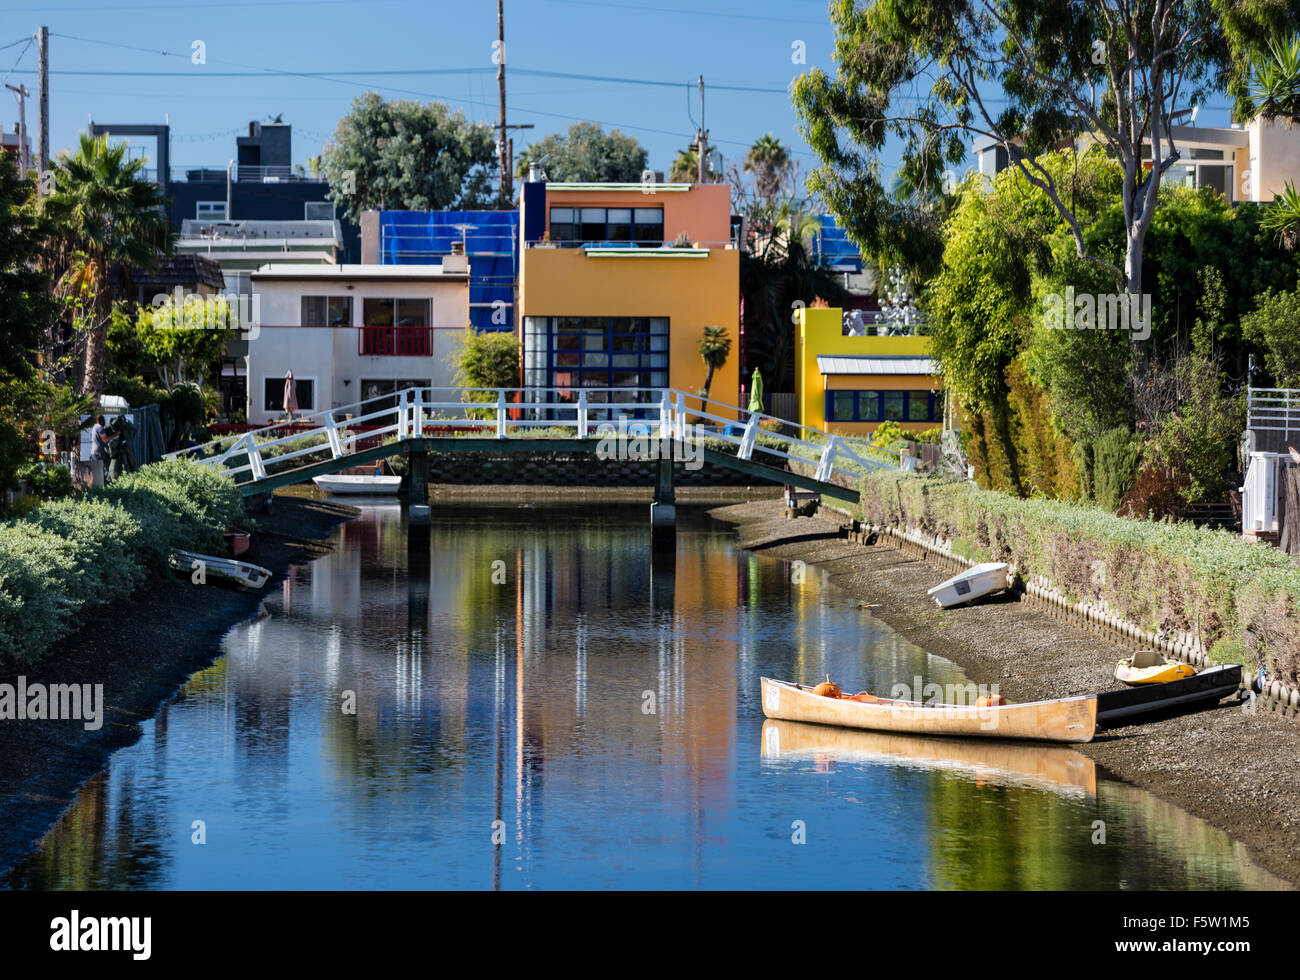 Howland Canal, one of the famous canals of Venice (Los Angeles) California, USA - Stock Image